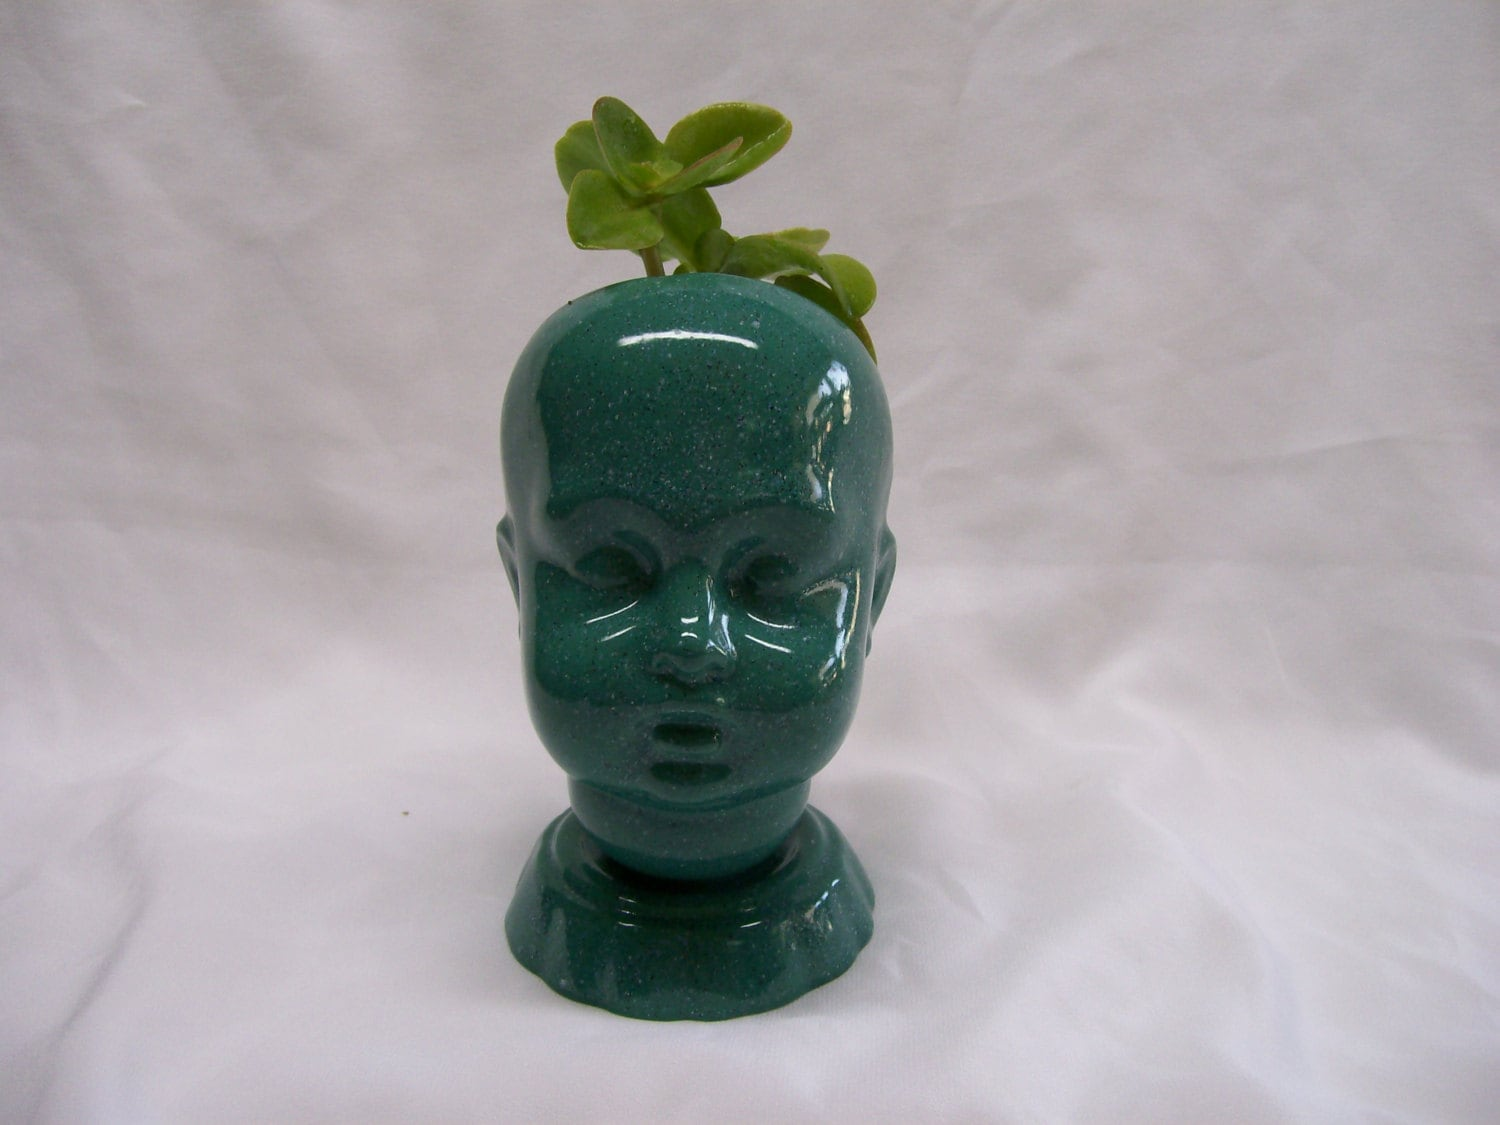 Ceramic Head Planter Ceramic Doll Head Planter Teal Speckled Glaze By Heamarkat